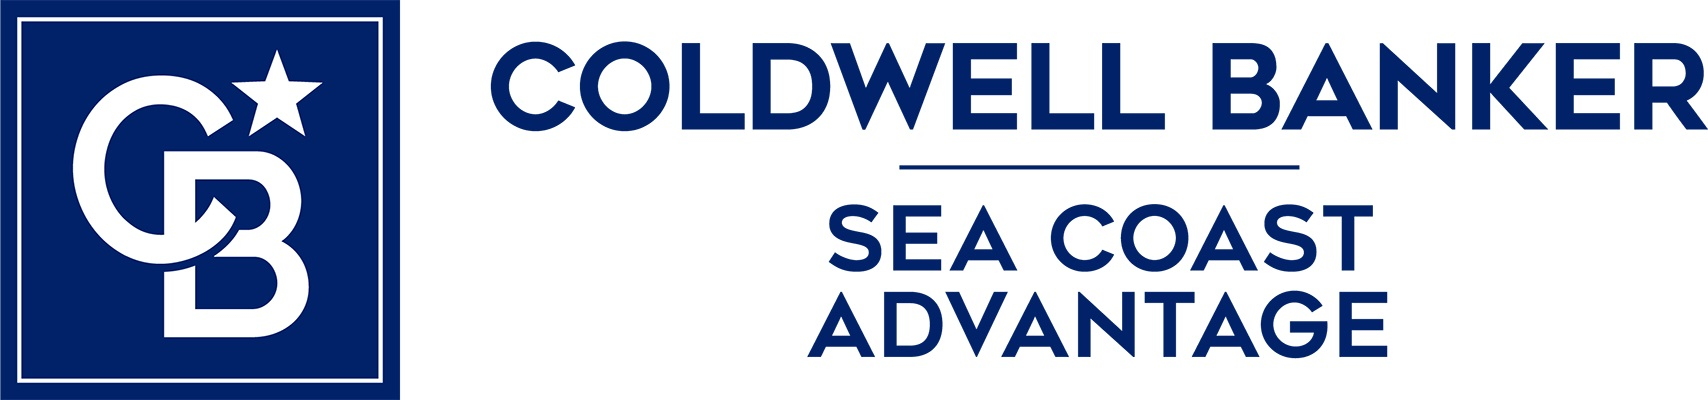 Margaret Young - Coldwell Banker Sea Coast Advantage Realty Logo